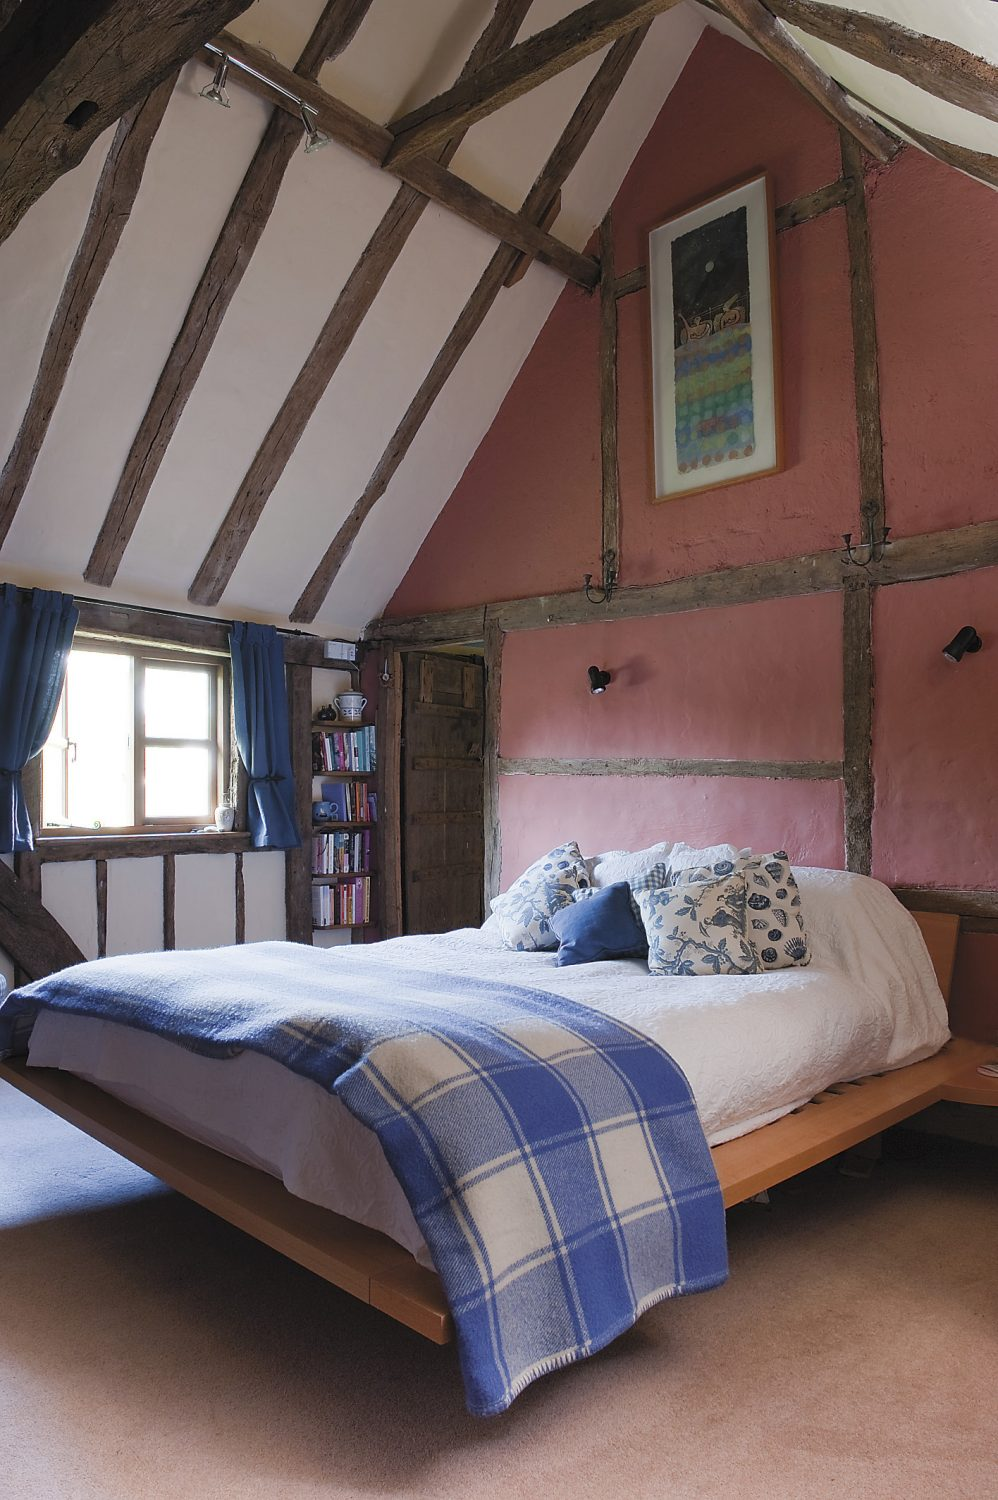 and so to sleep...the magnificent vaulted bedroom is a gem, with exposed timber, the fireplace and wobbly floor